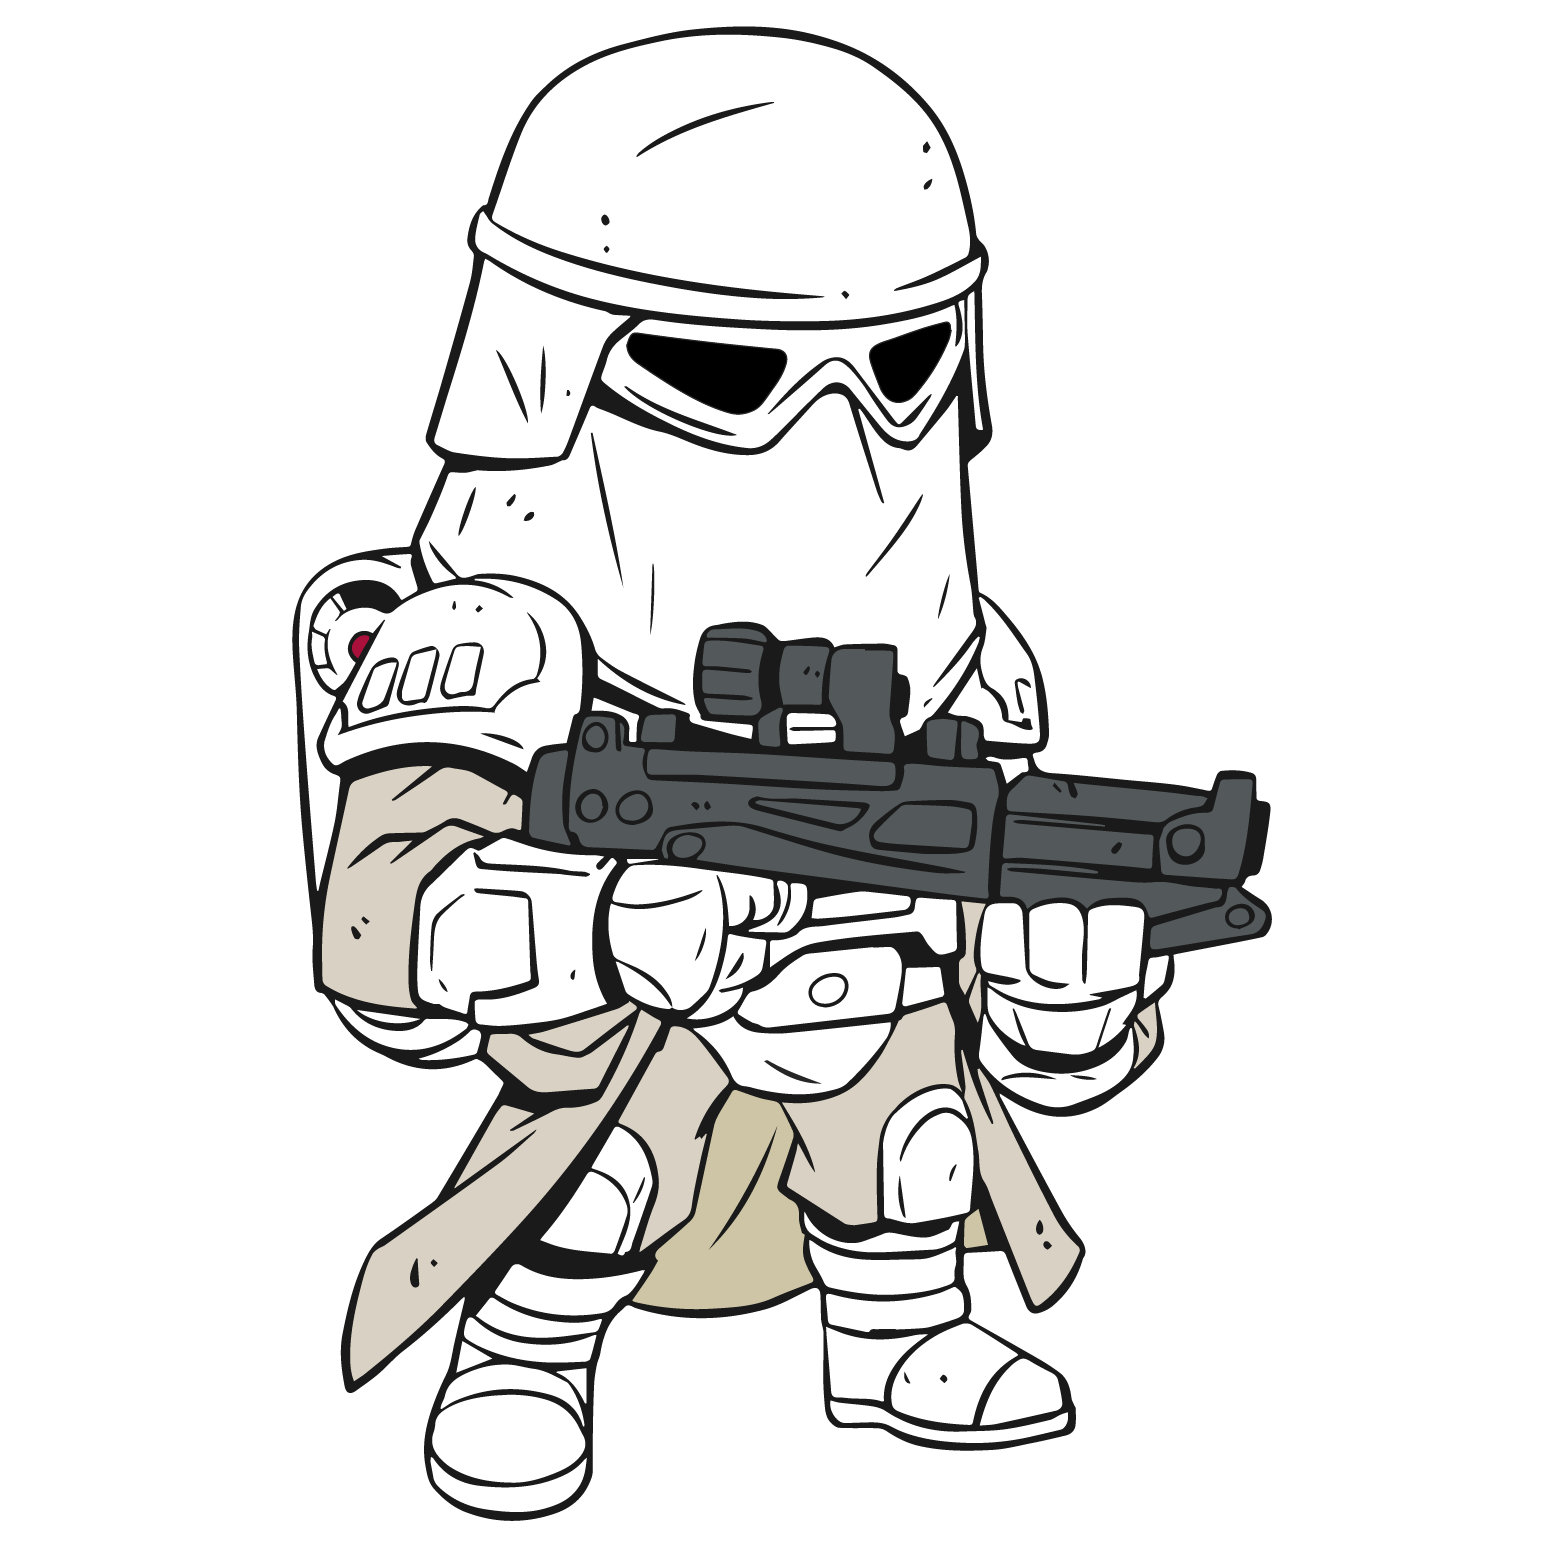 Star wars cartoon characters clipart image royalty free library Star Wars Cartoon Drawing at GetDrawings.com | Free for personal use ... image royalty free library